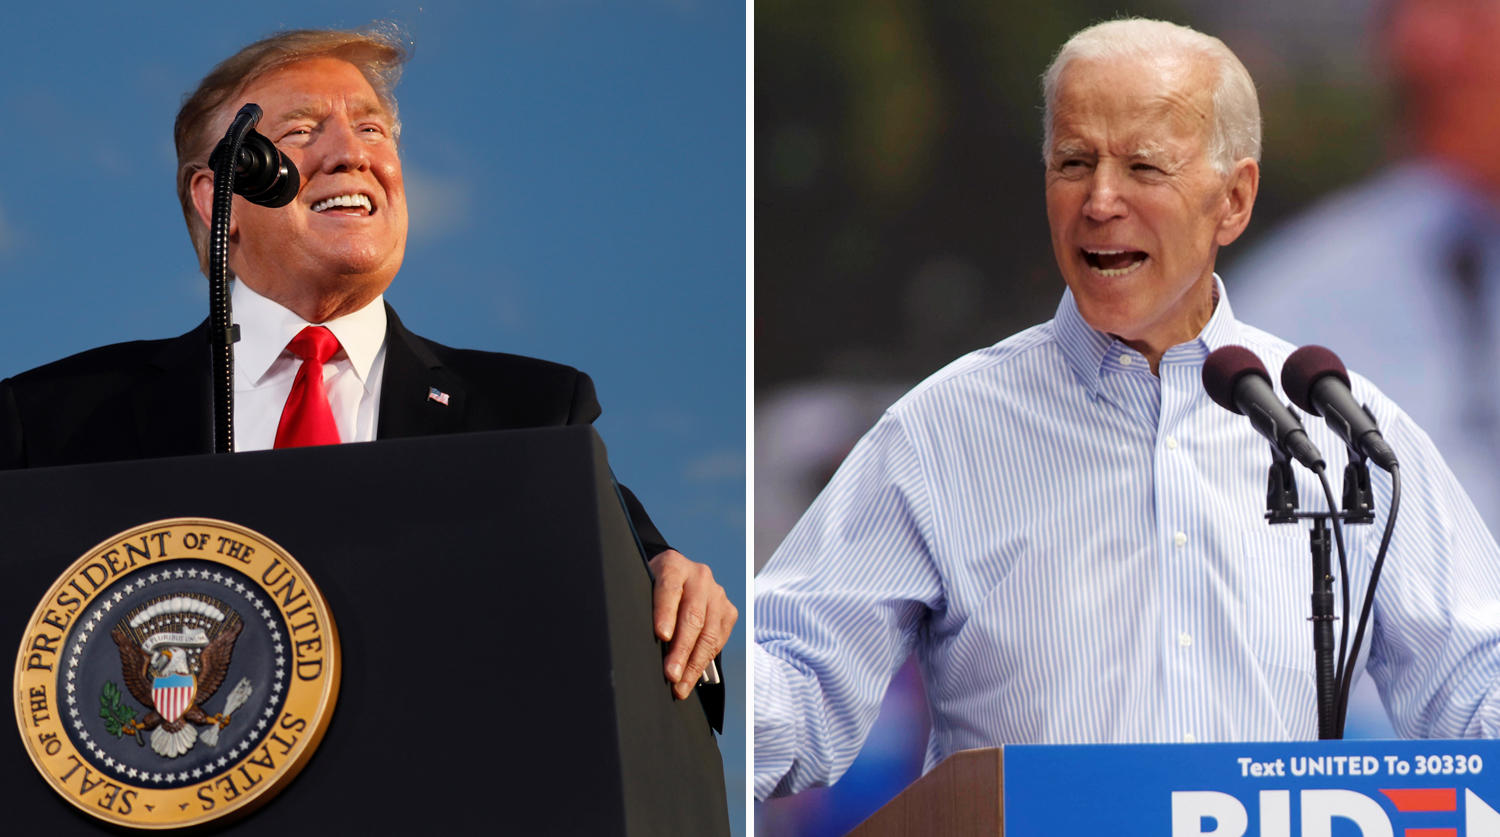 Biden seeks to capitalize on Trump's icy reception